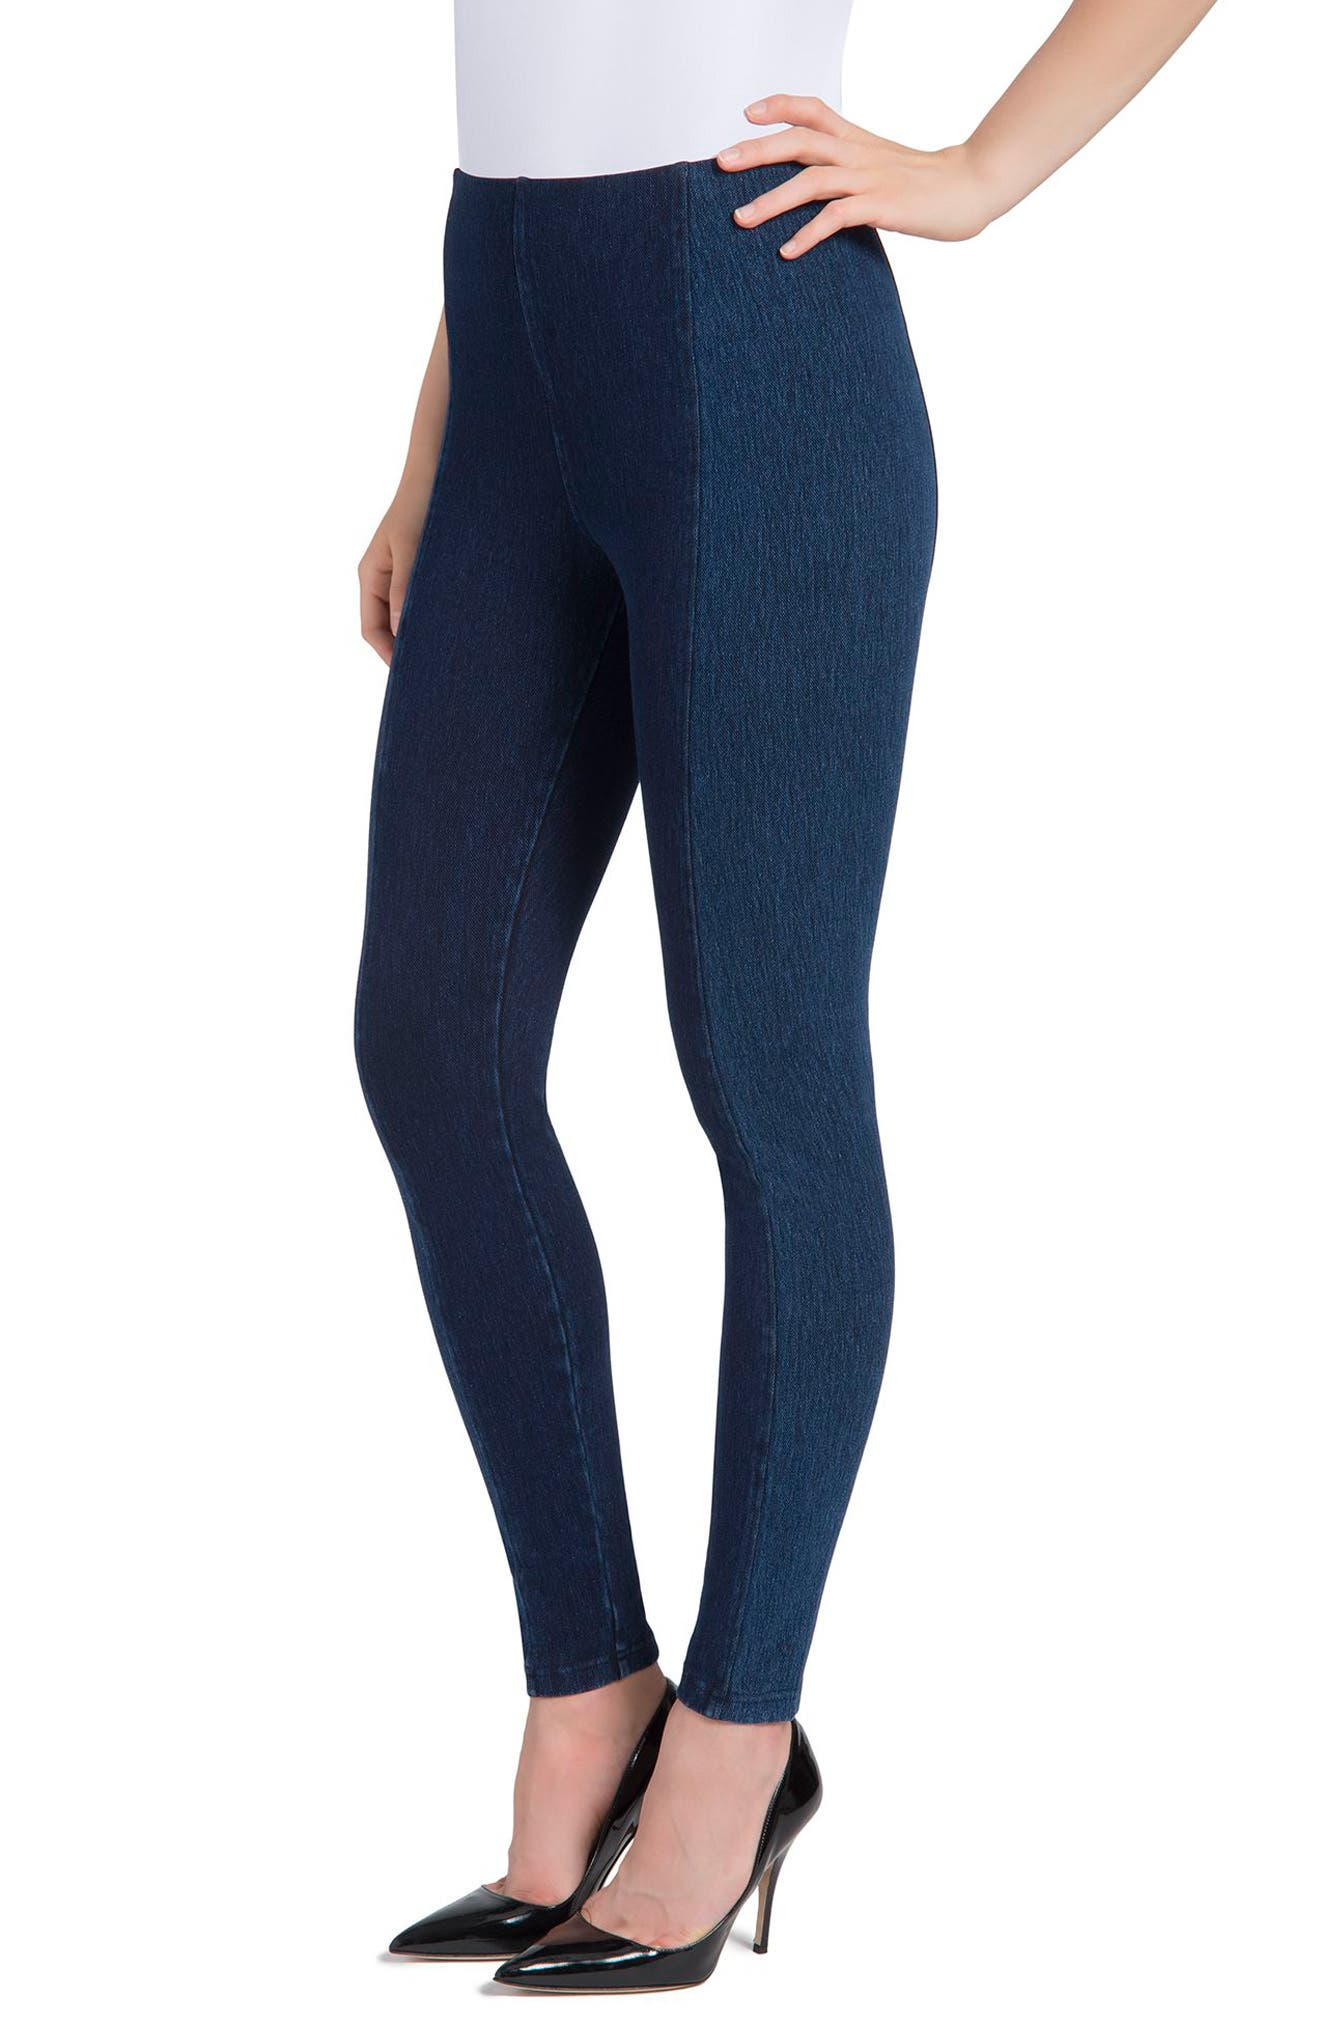 Marley Denim Leggings,                             Alternate thumbnail 6, color,